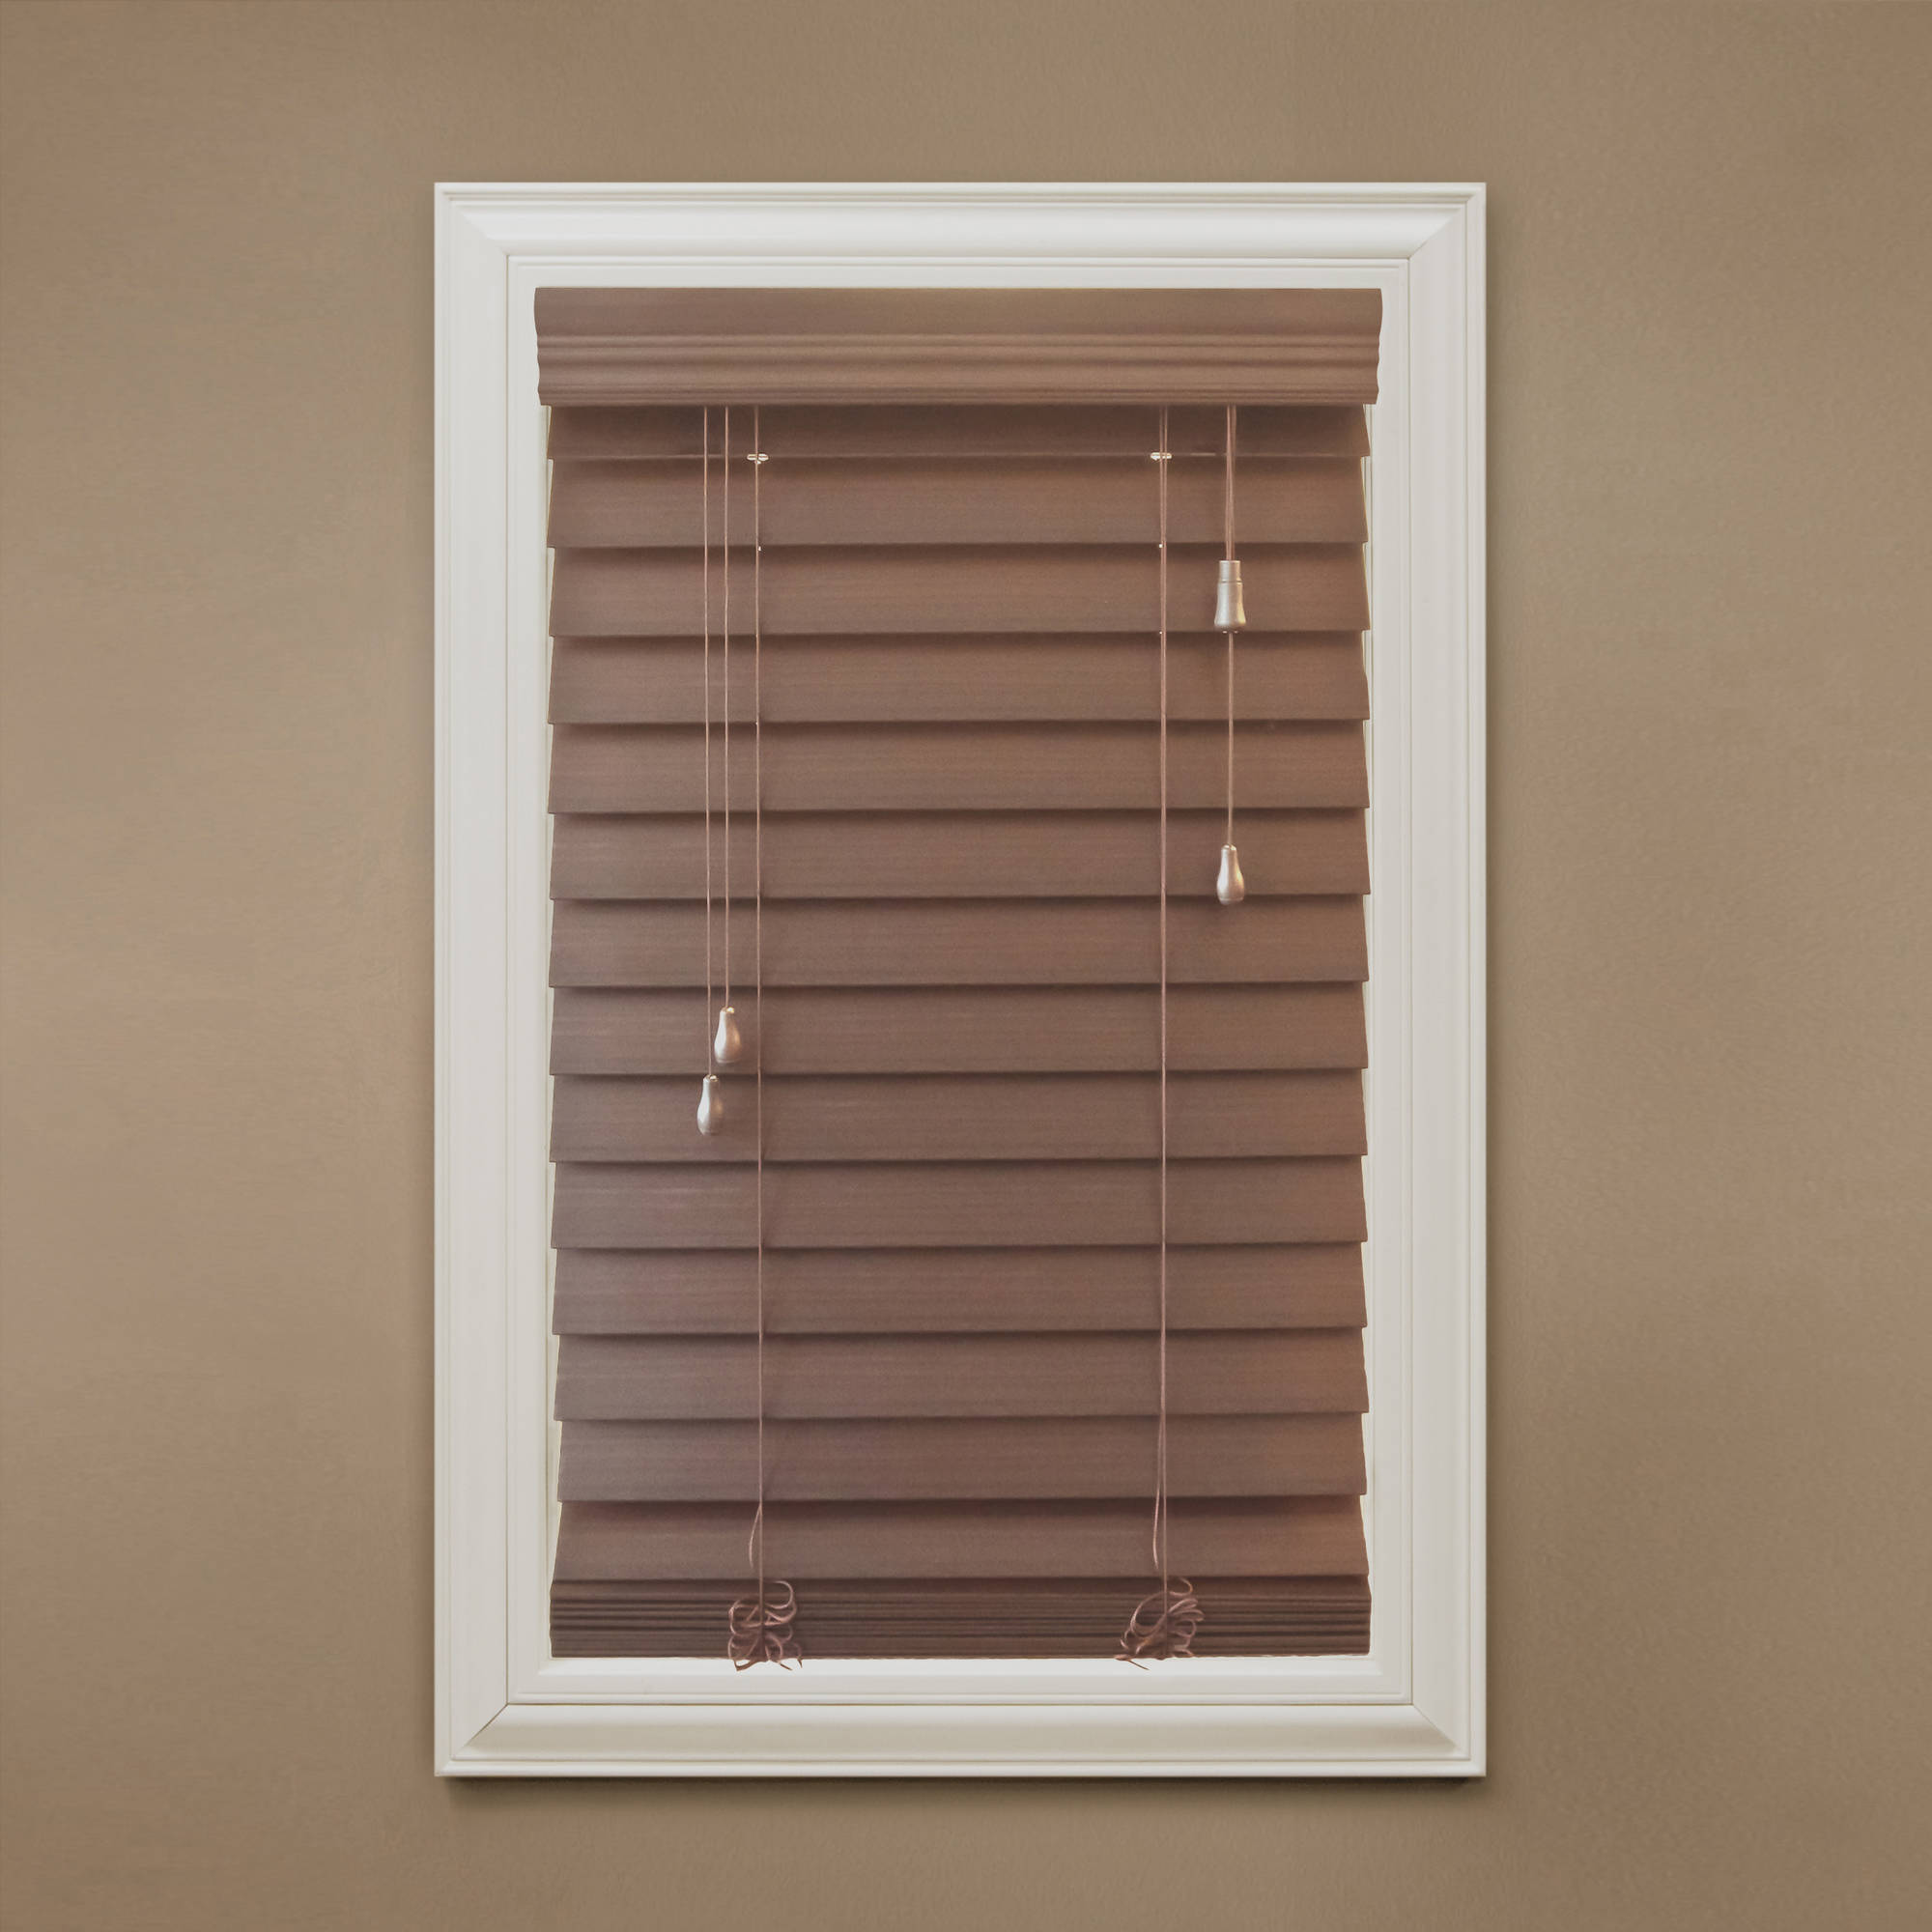 Richfield Studio 2 5 Faux Wood Blinds Width 10 40 5 Length 48 Walmart Com